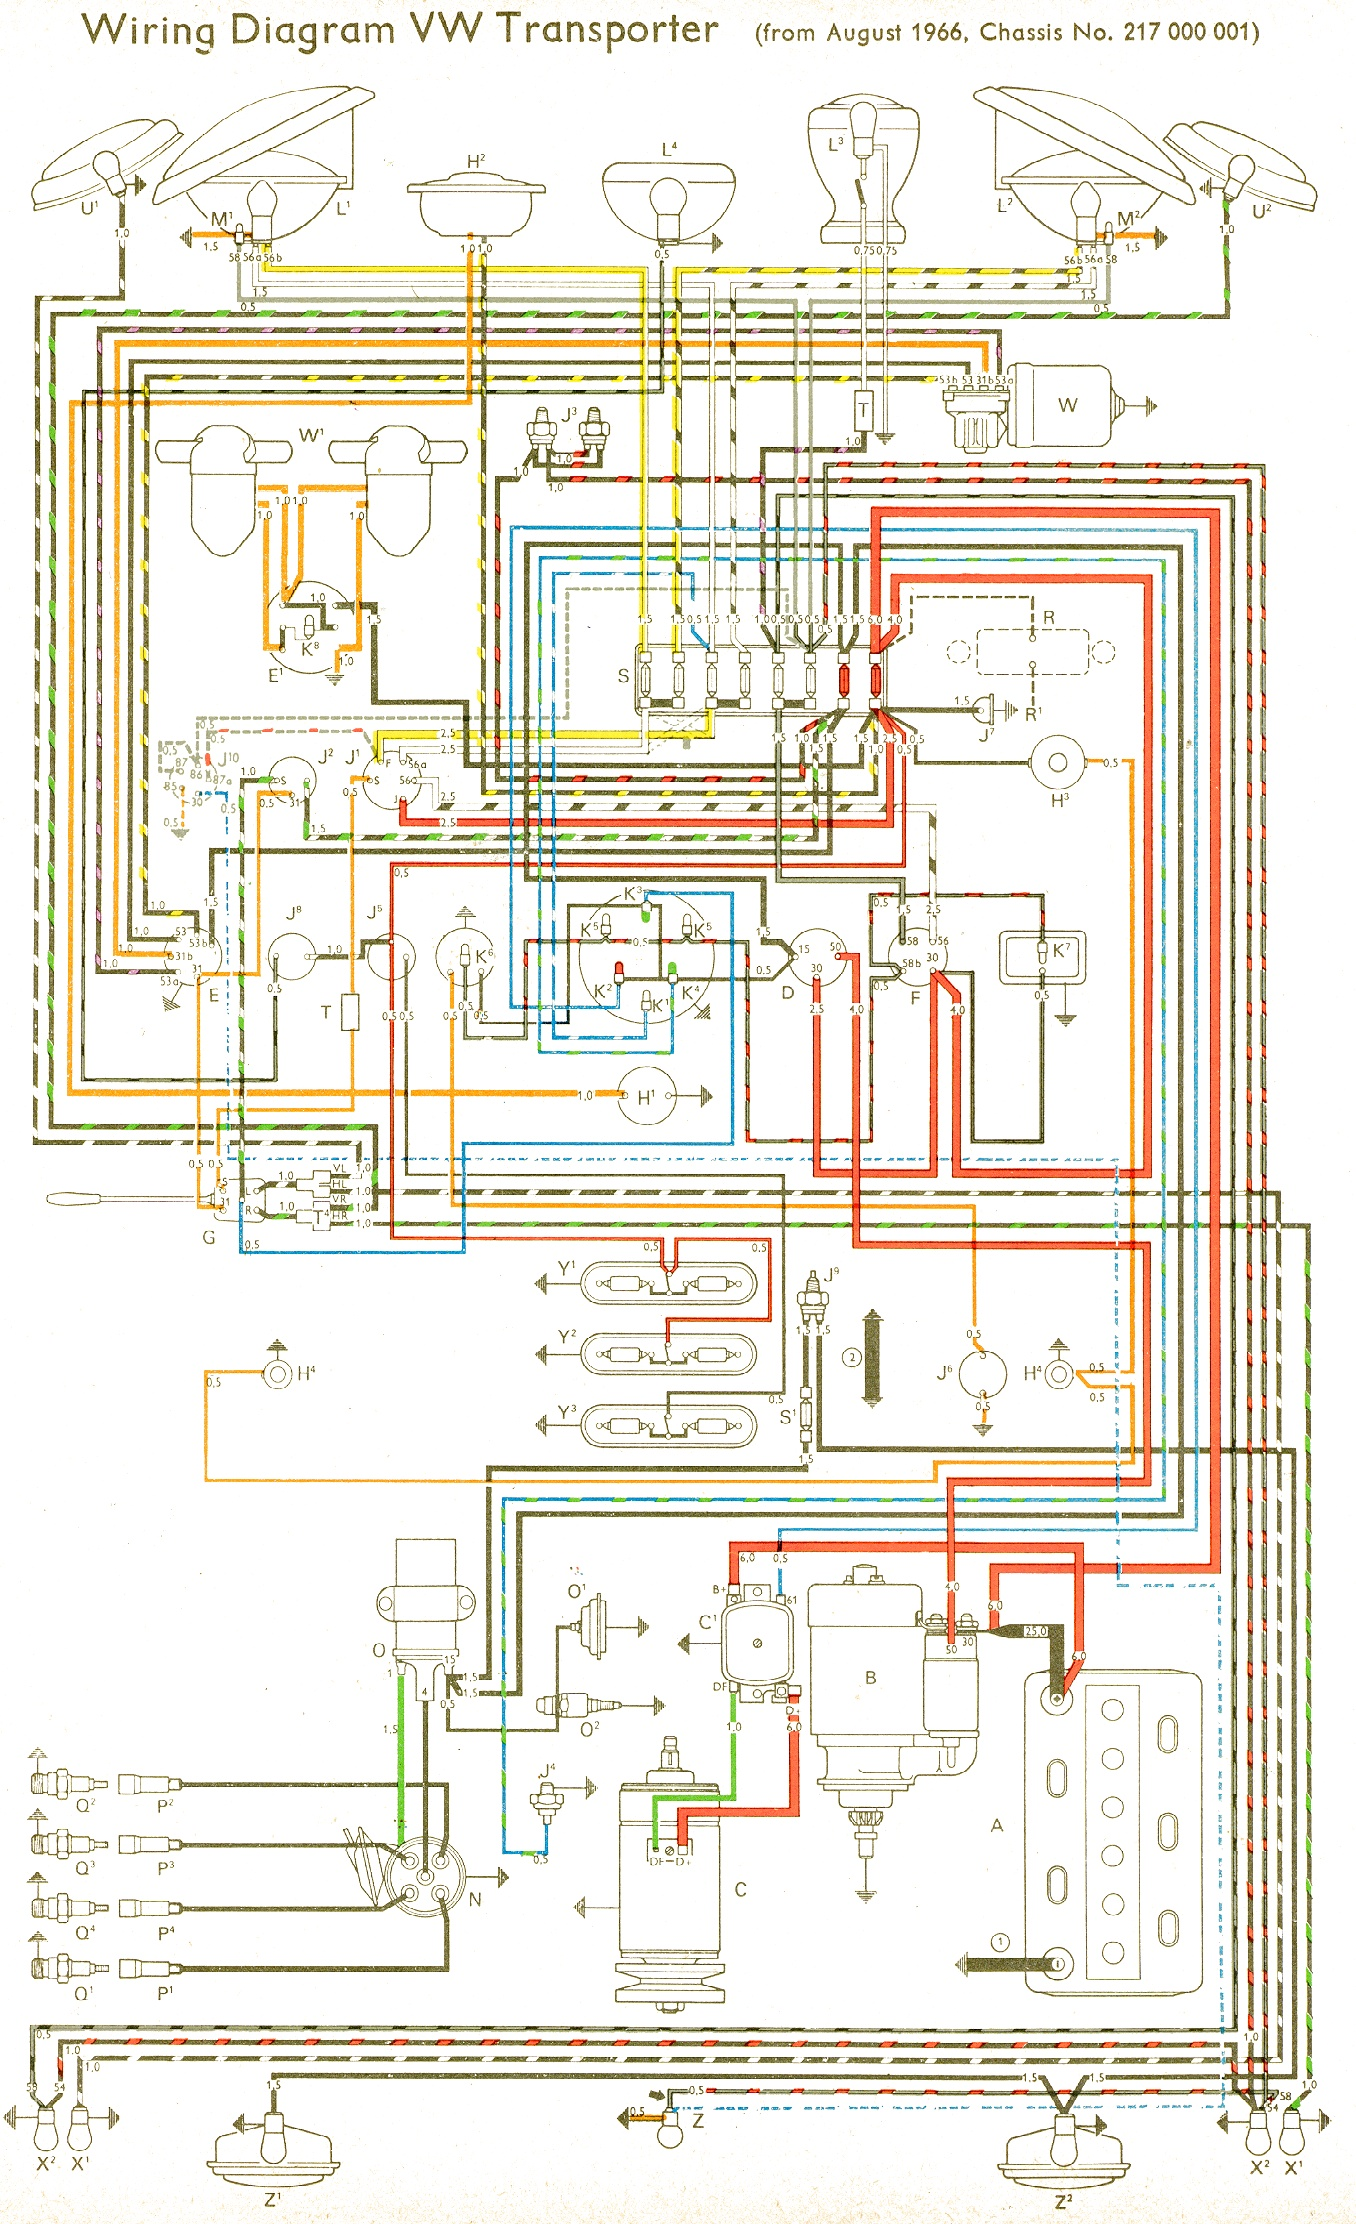 bus 66 bus wiring diagram vw wiring harness diagram \u2022 wiring diagrams j 1972 vw beetle fuse box diagram at nearapp.co